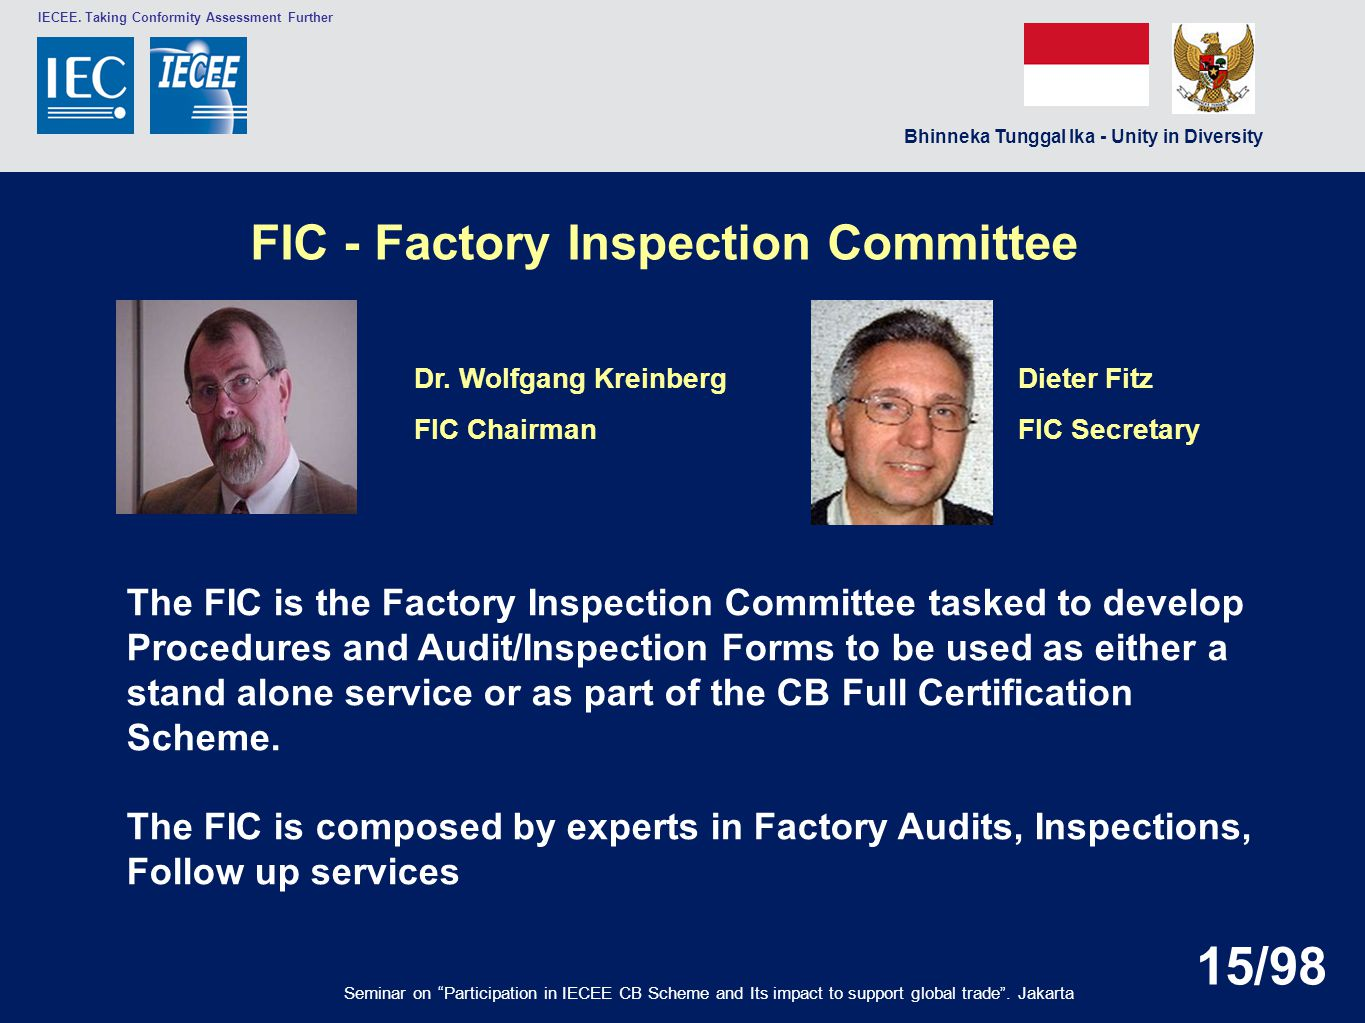 FIC - Factory Inspection Committee